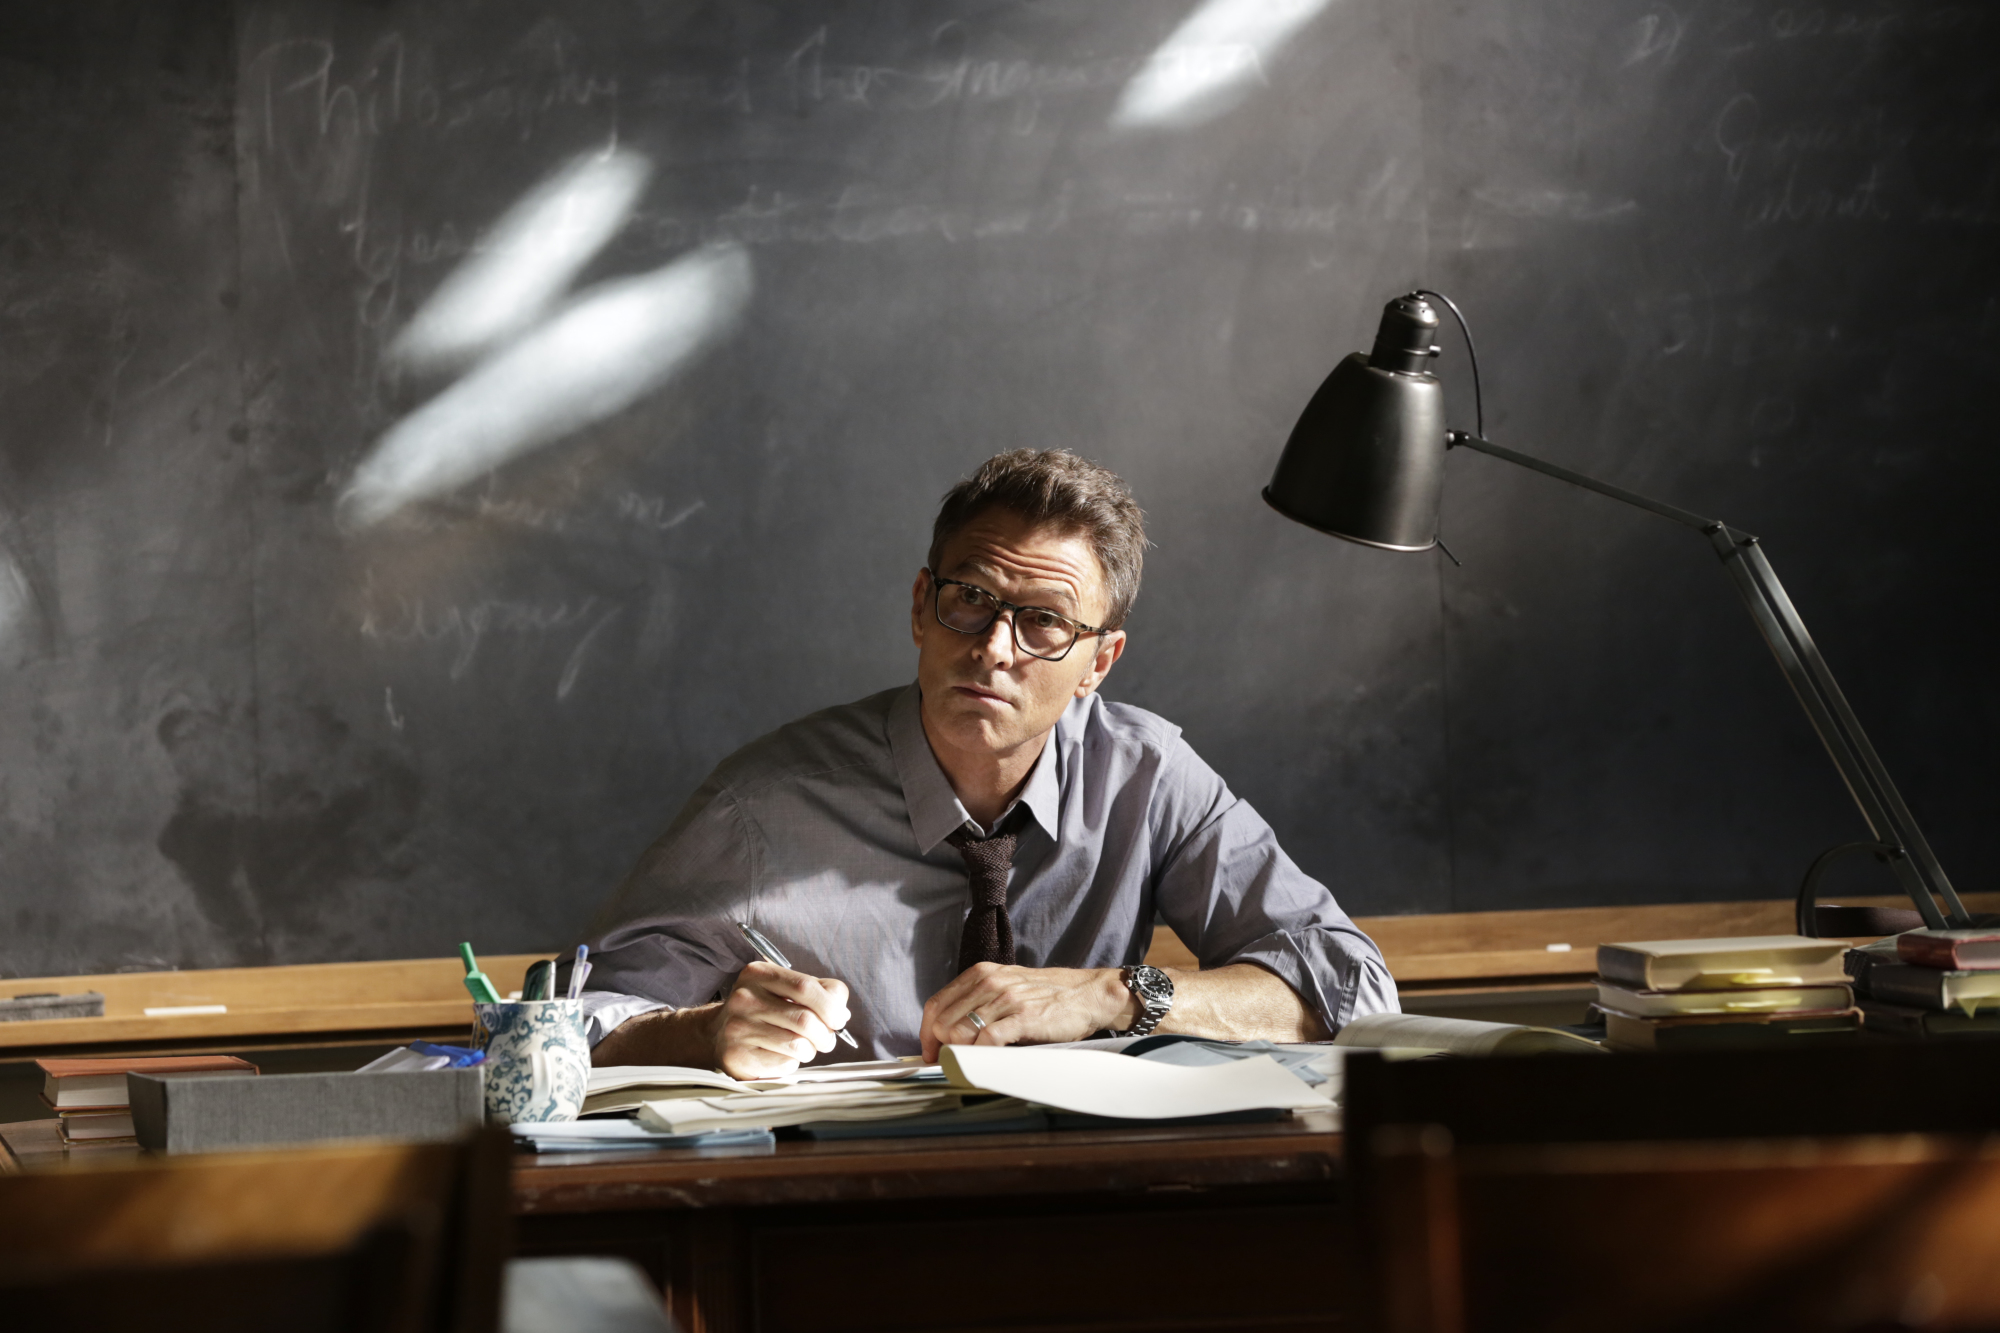 2. Tim Daly is best known for his starring role on the TV show